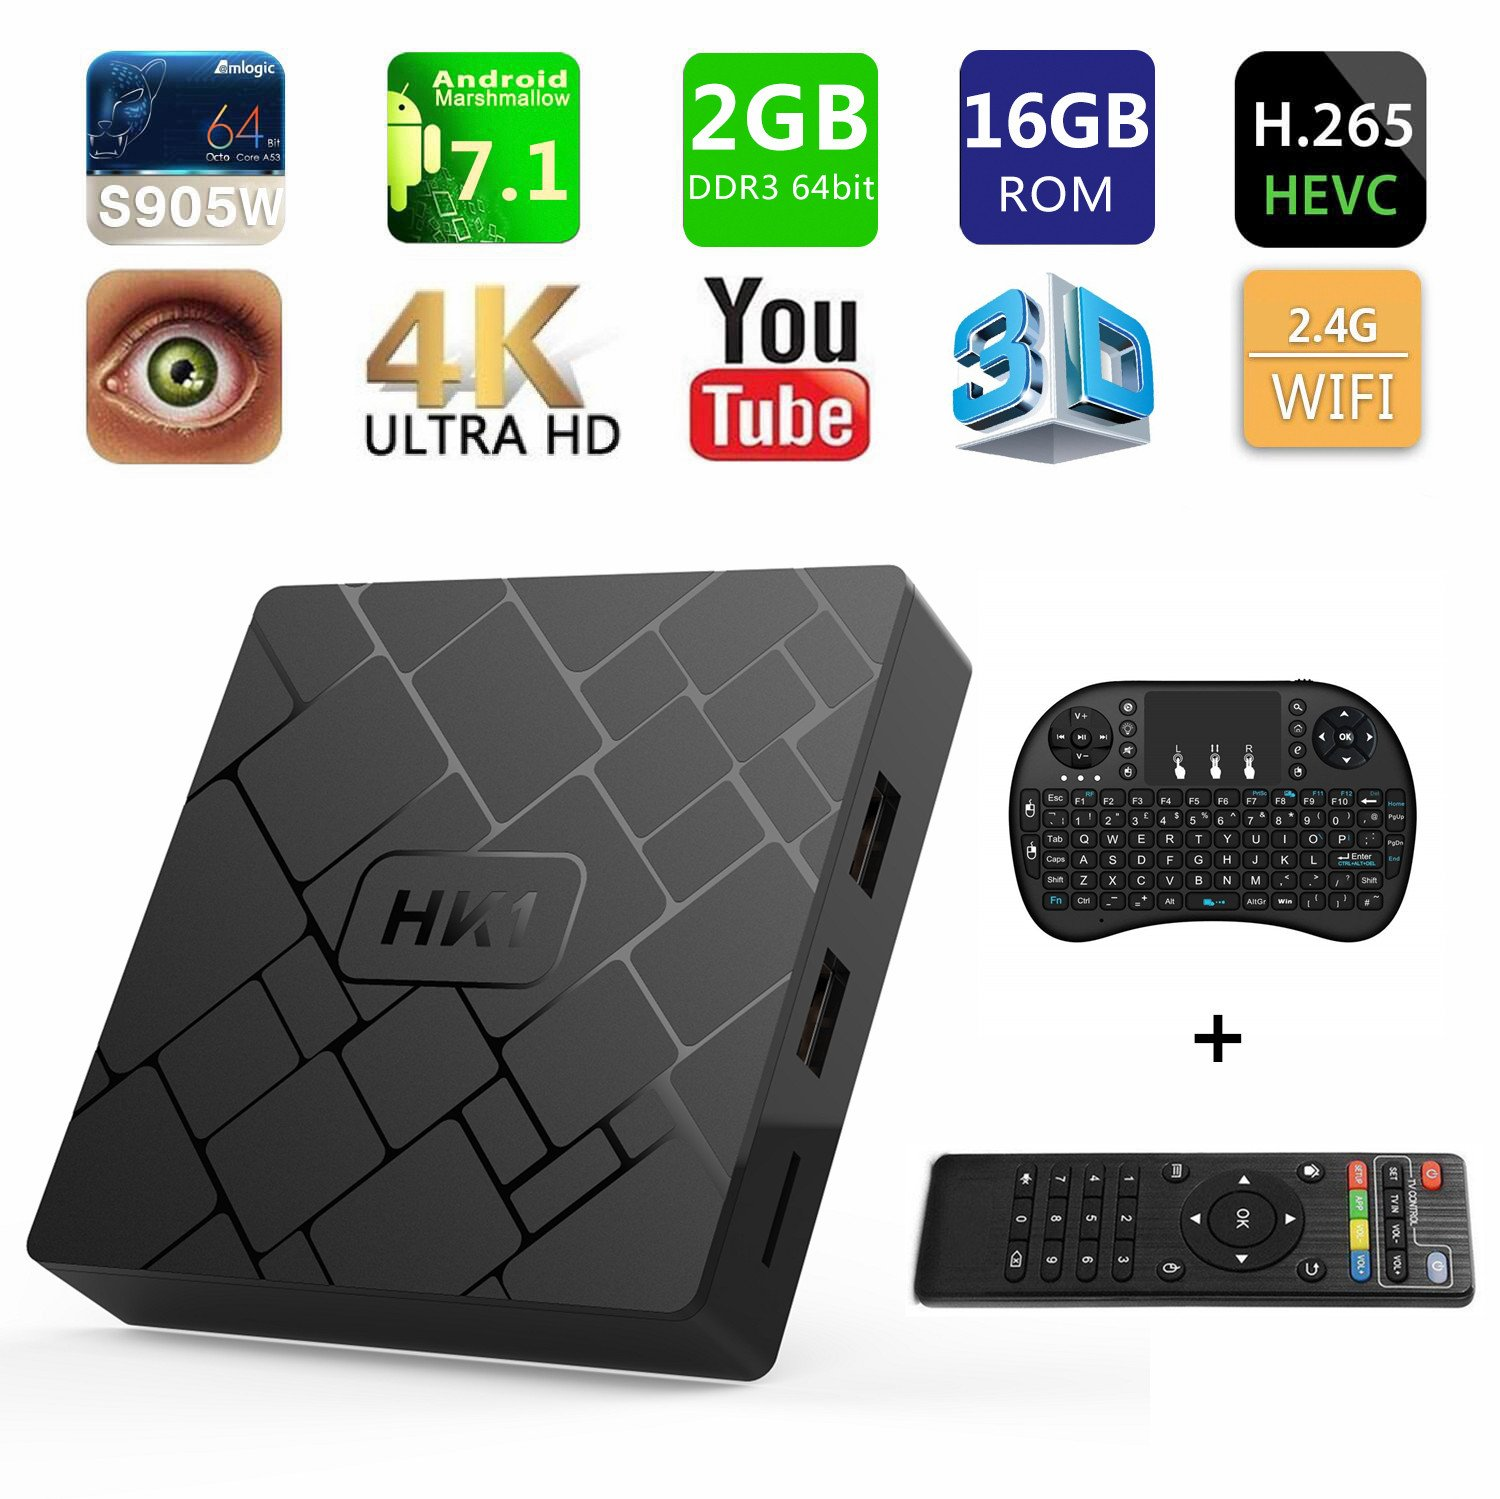 Top 5 Best Android Kodi TV Boxes 2018-2020